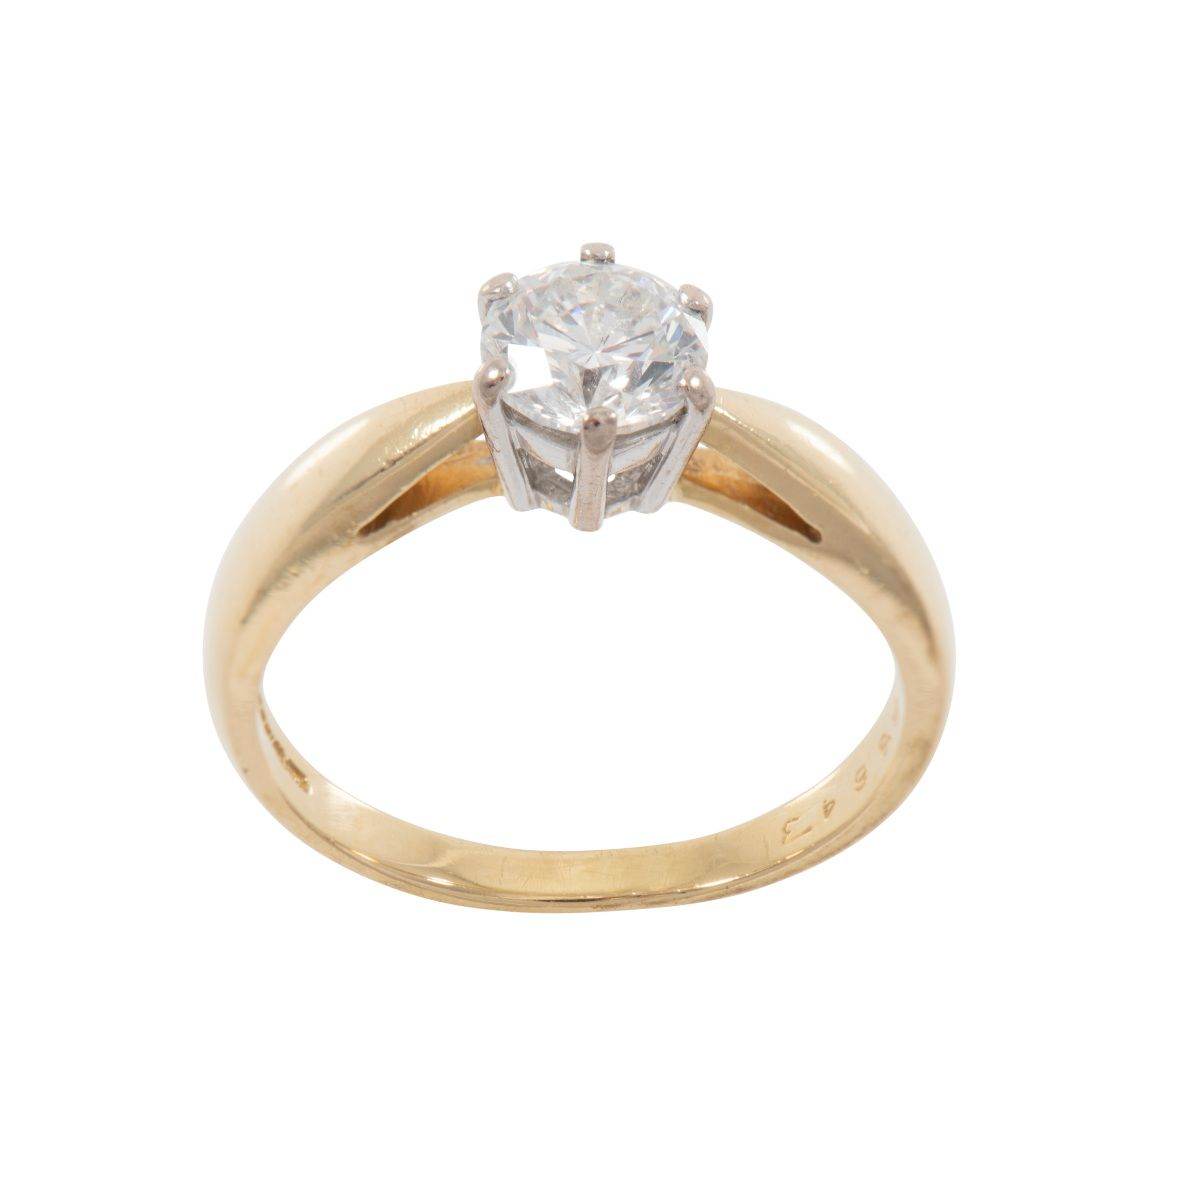 18ct Gold Ladies 0.87ct Diamond Solitaire Ring Size P Q5FNCY